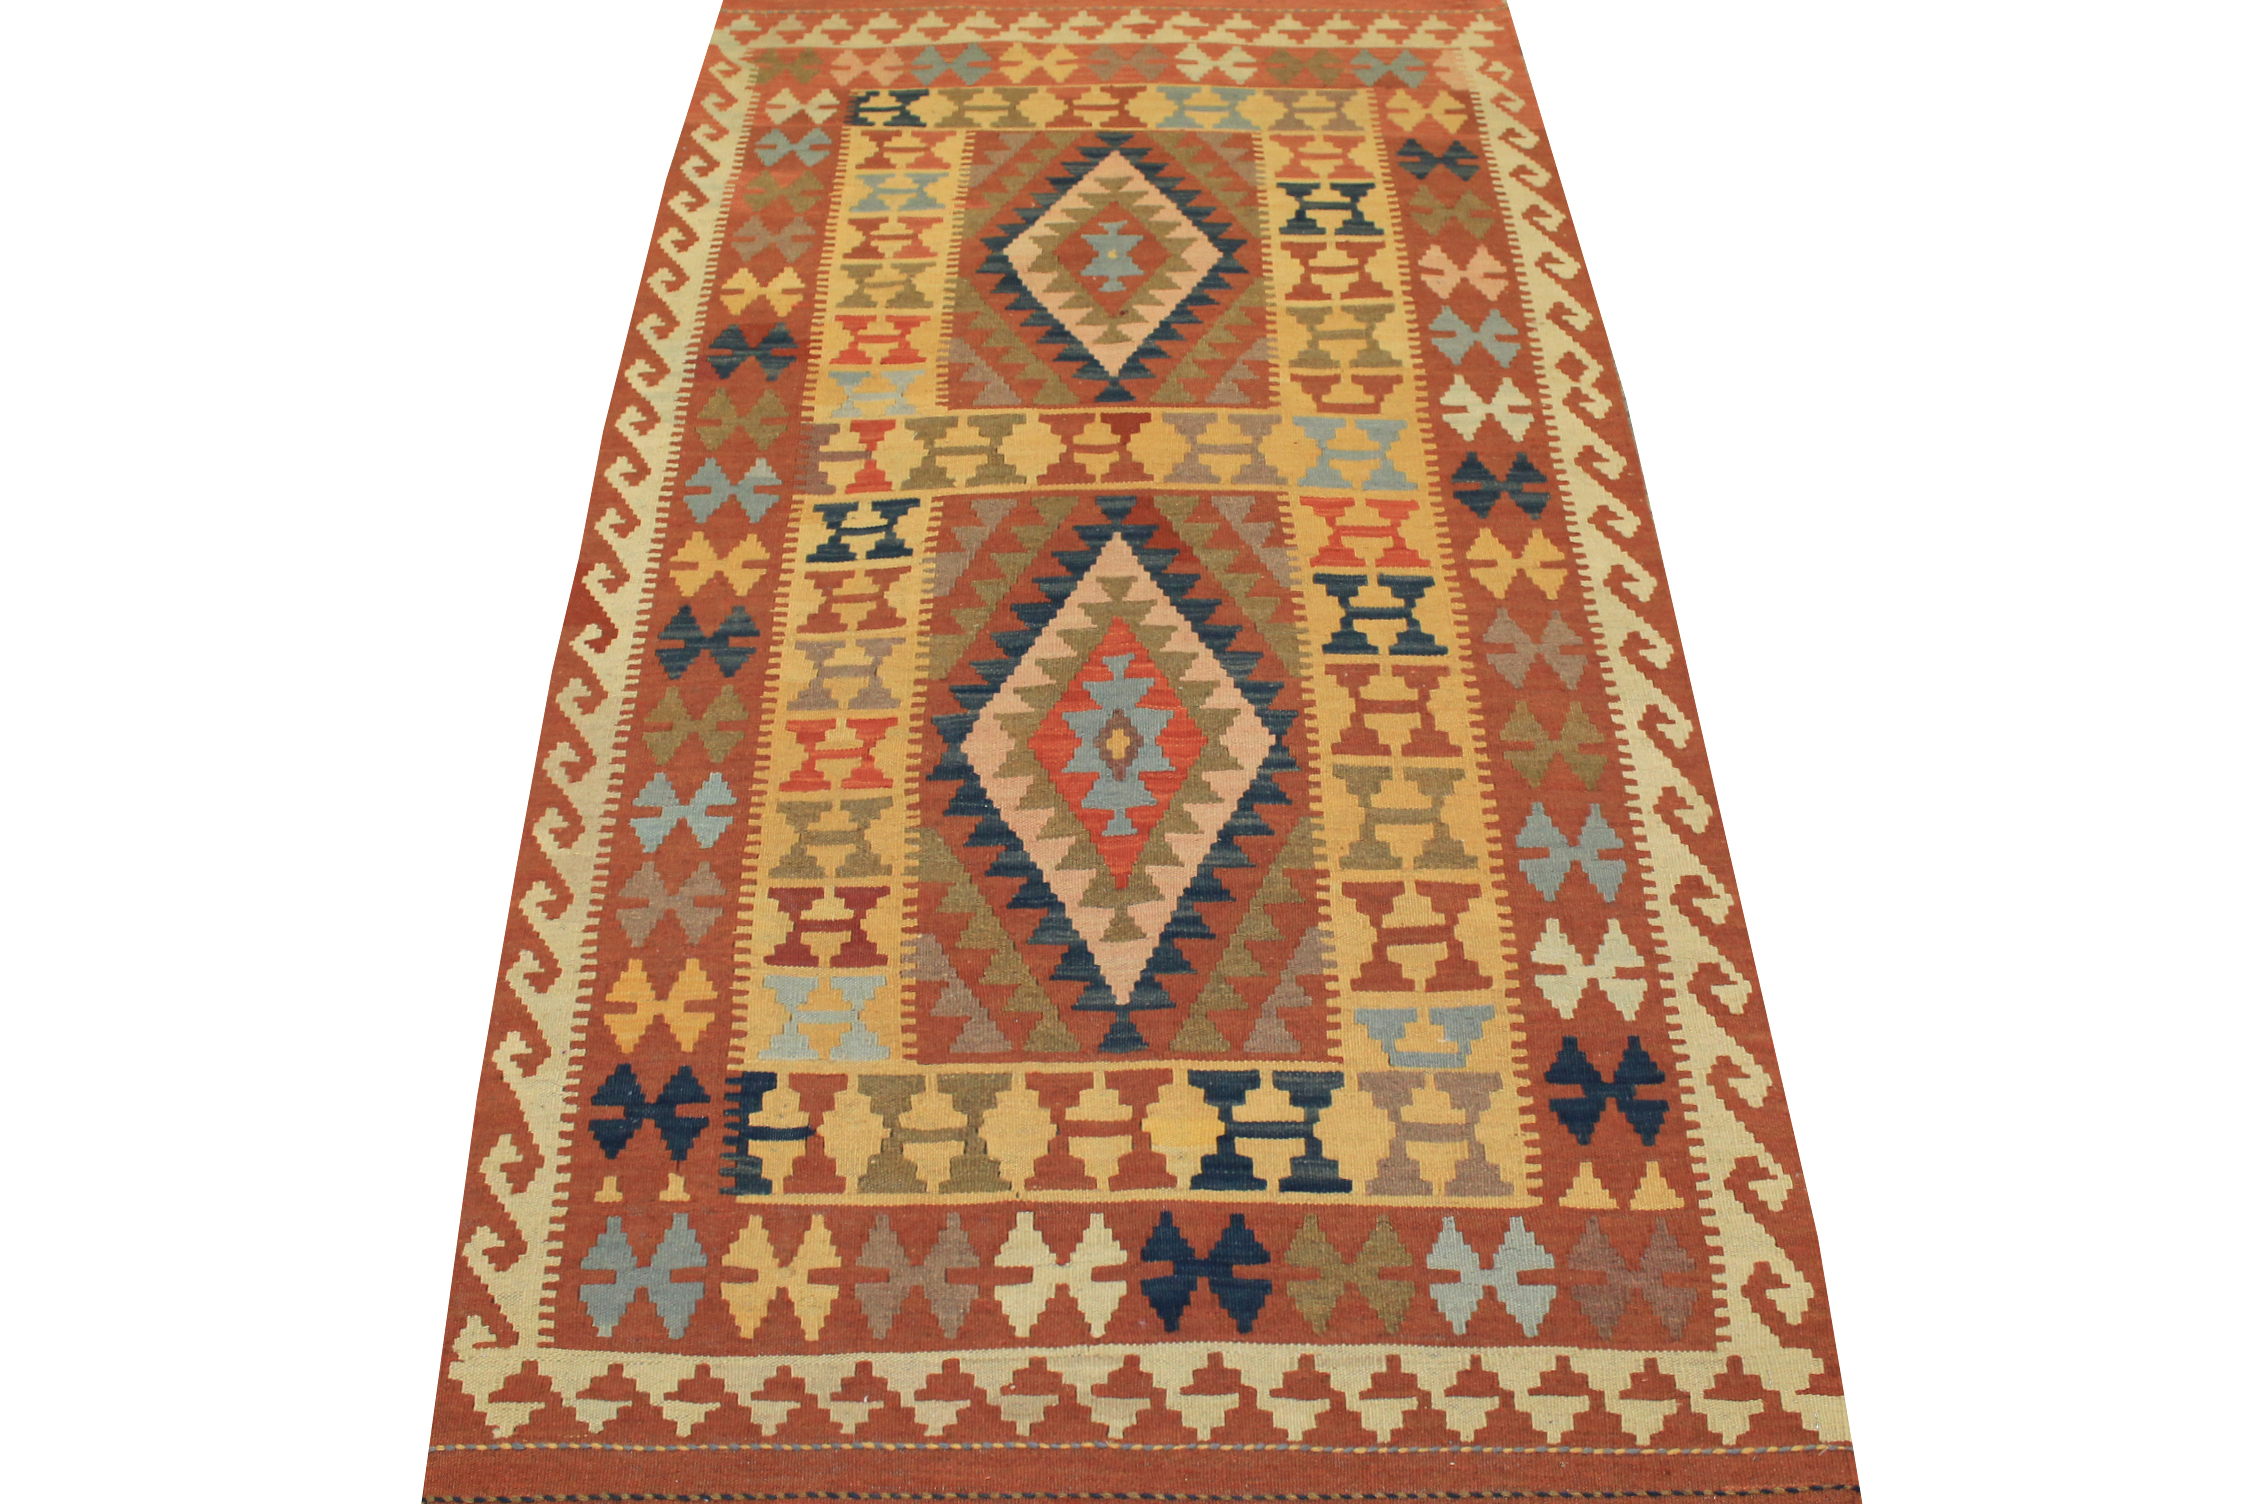 4x6 Flat Weave Hand Knotted Wool Area Rug - MR13329